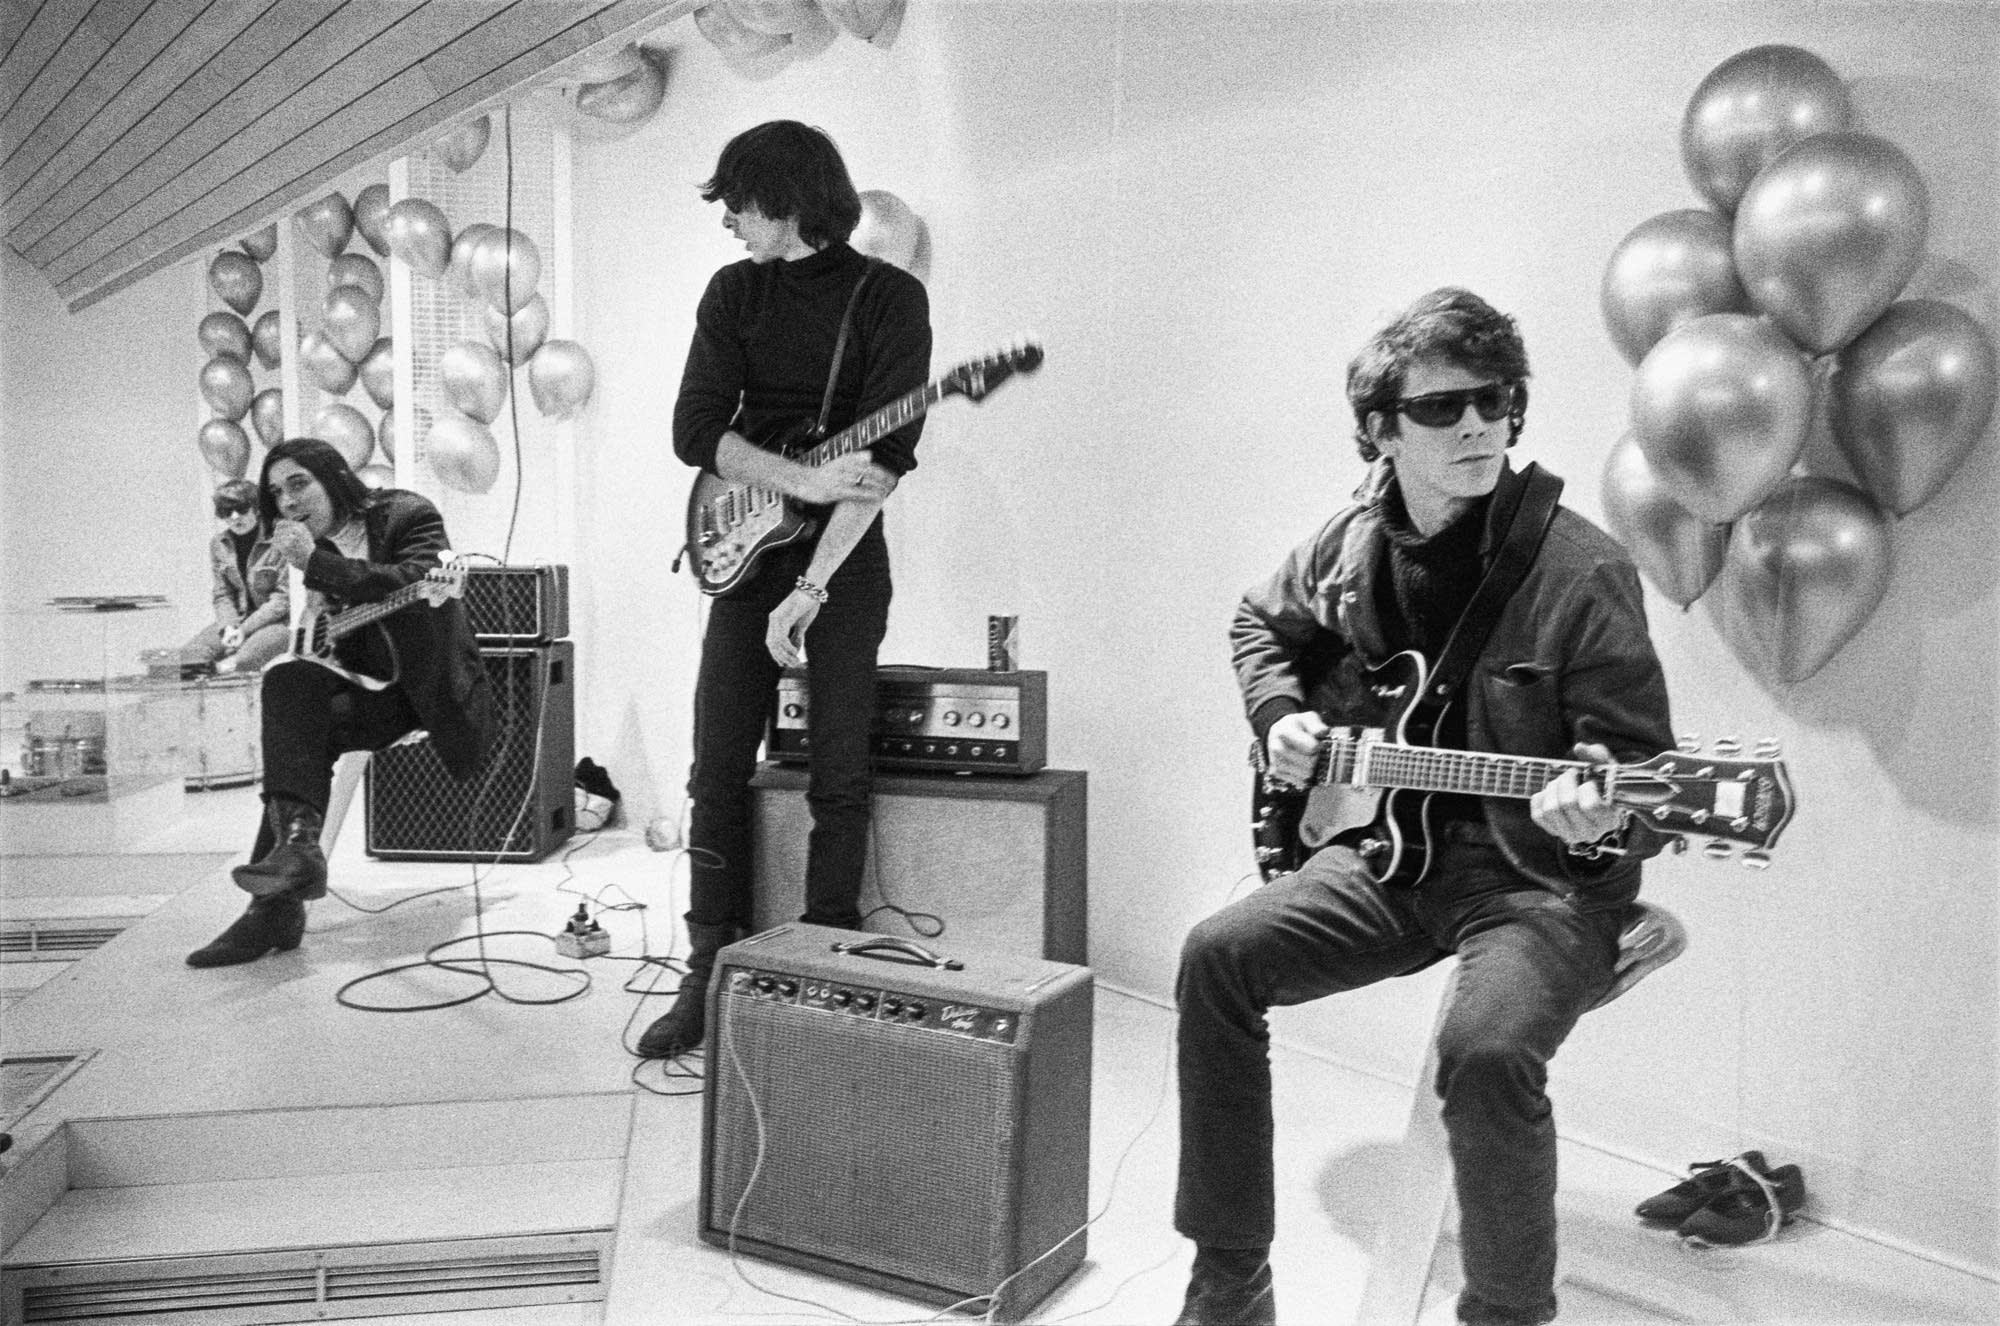 Black and white image of the Velvet Underground in an art gallery.